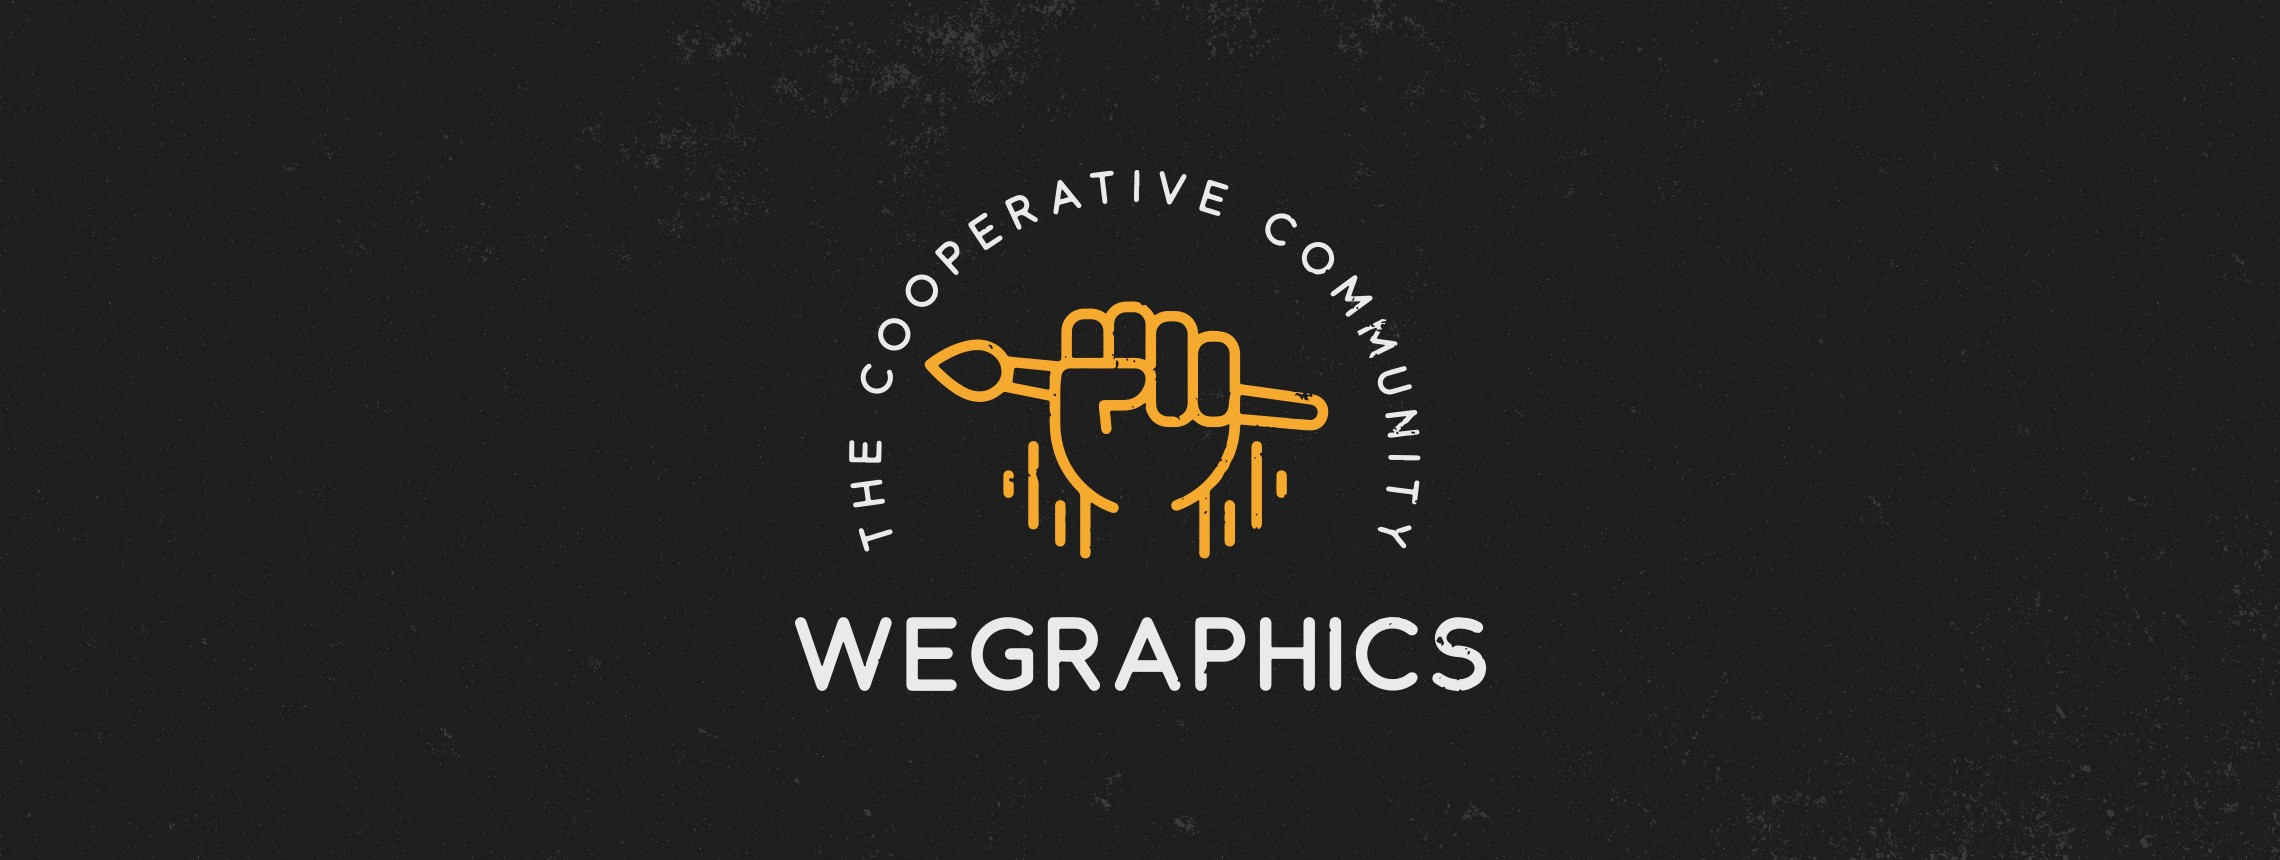 The New WeGraphics